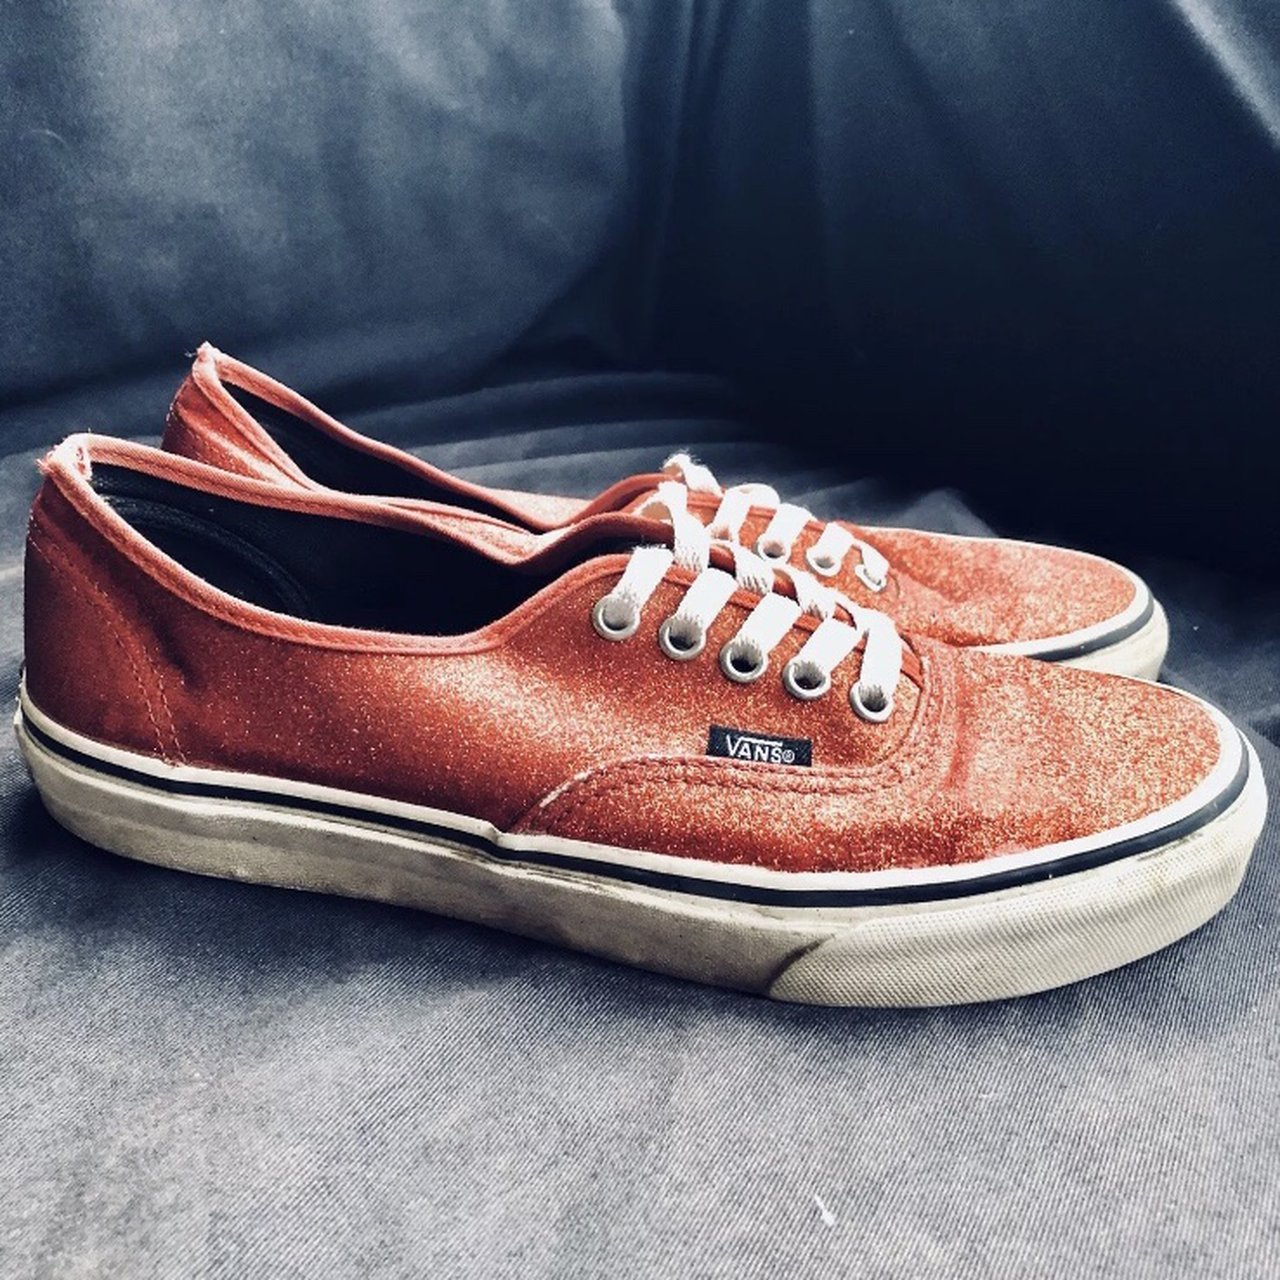 Women s Size 7 red glittery Vans trainers. Only been worn a - Depop e88c2f4cd